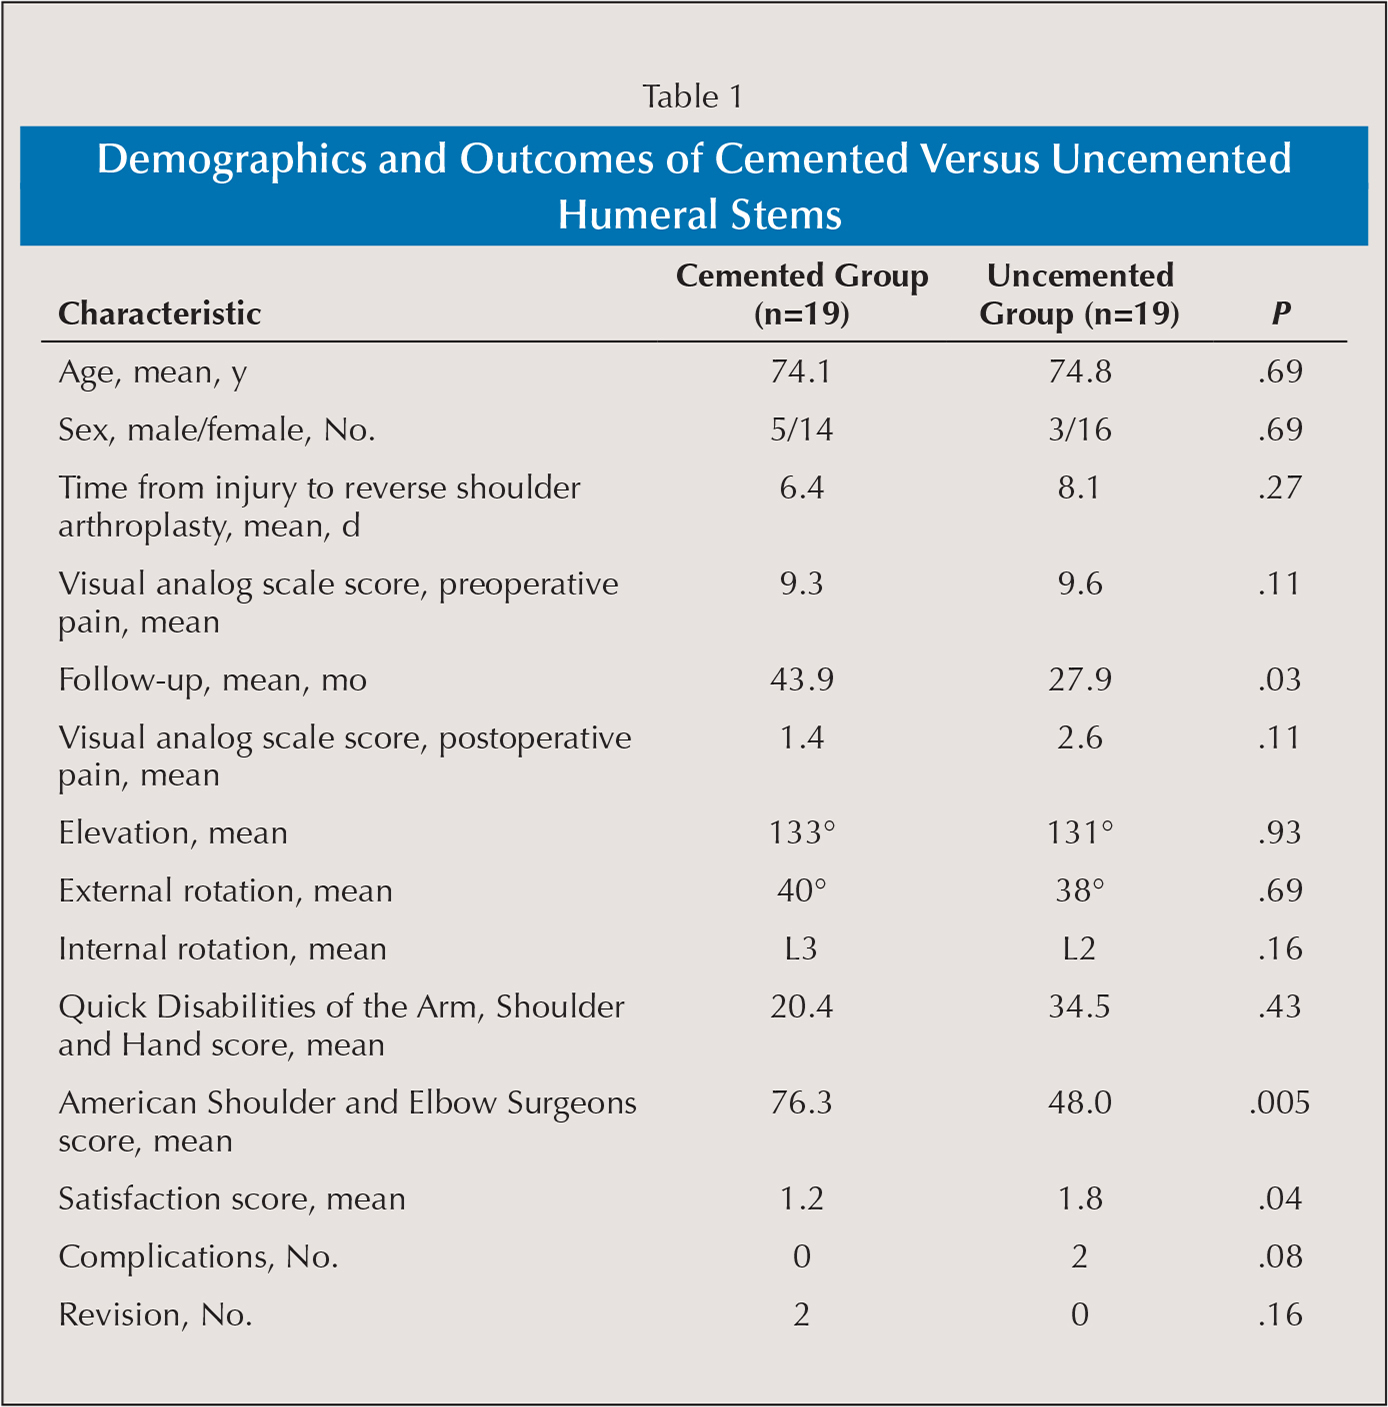 Demographics and Outcomes of Cemented Versus Uncemented Humeral Stems